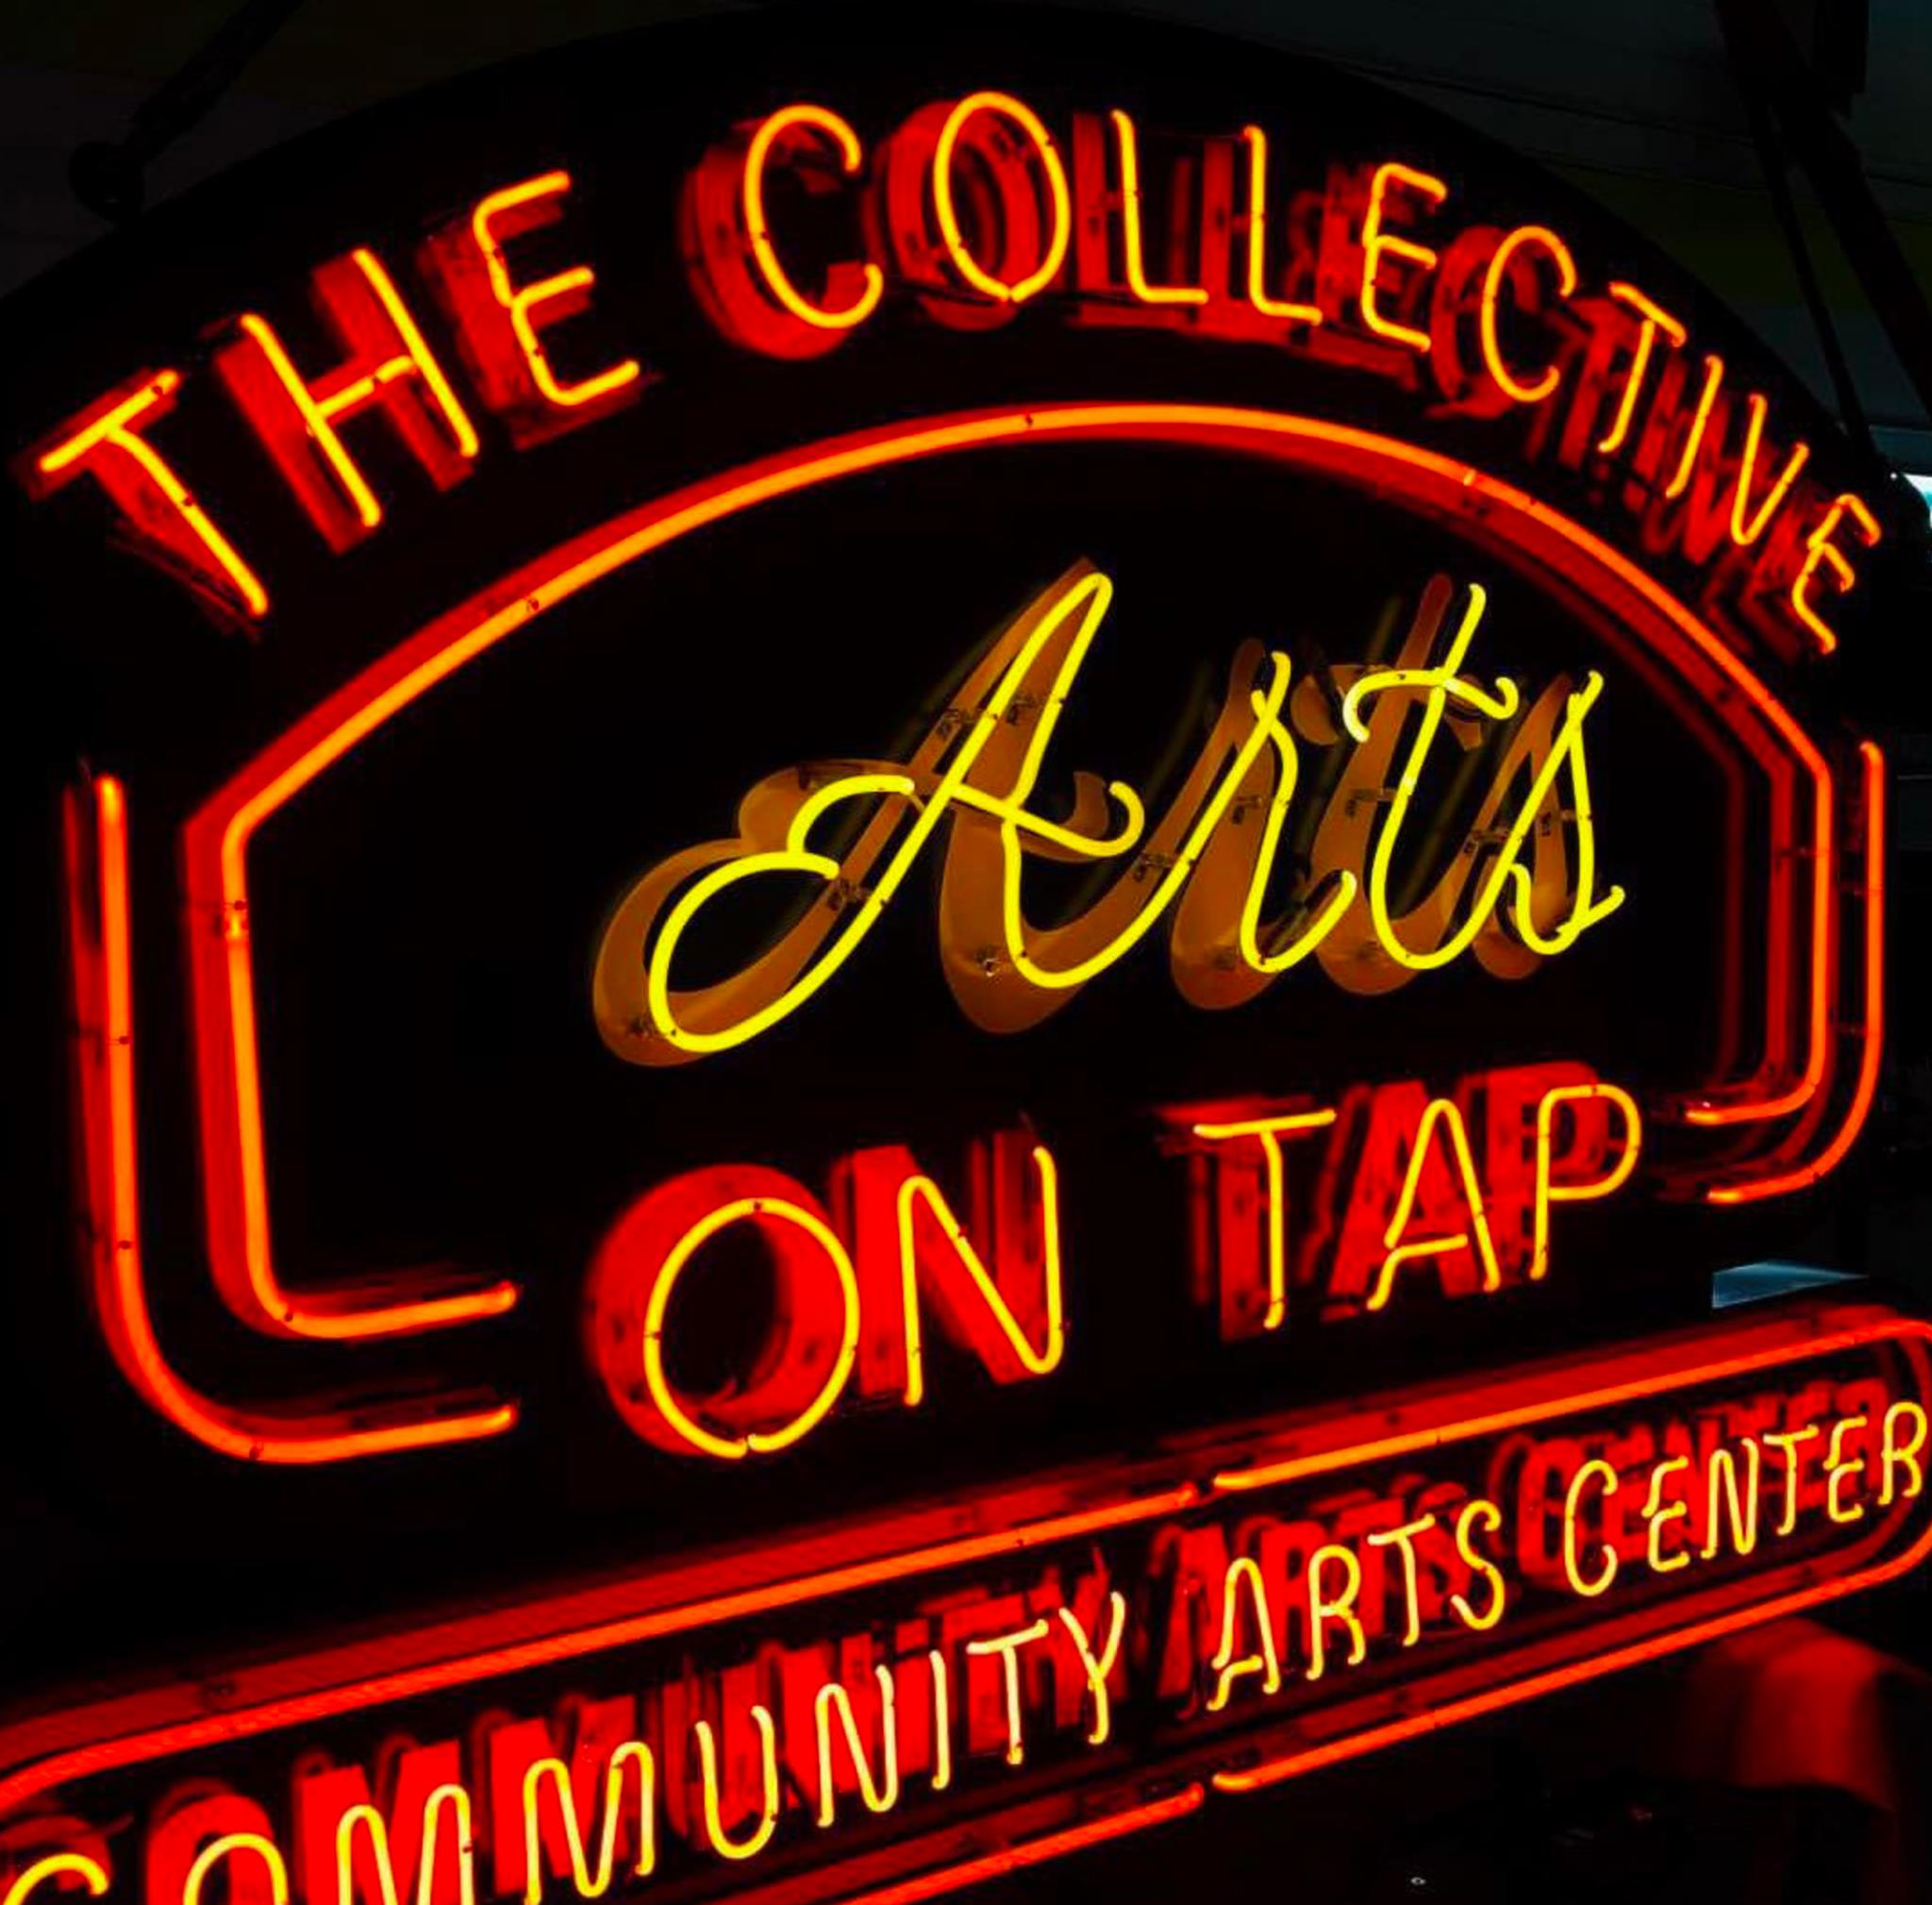 lettepress art print show old town lafaytte colorado local printmaking the collective woodtype posters